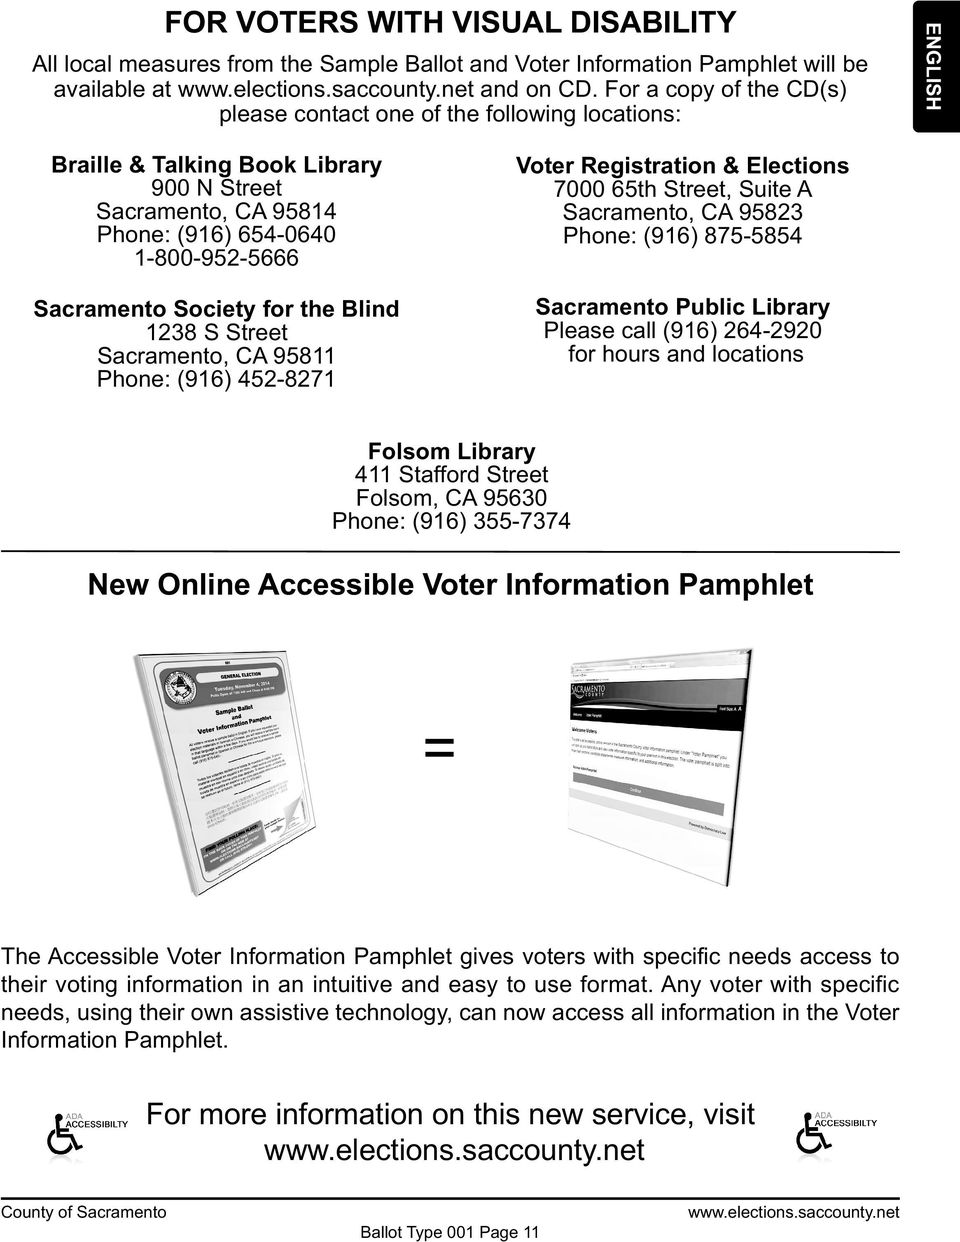 for the Blind 1238 S Street Sacramento, CA 95811 Phone: (916) 452-8271 Voter Registration & Elections 7000 65th Street, Suite A Sacramento, CA 95823 Phone: (916) 875-5854 Sacramento Public Library